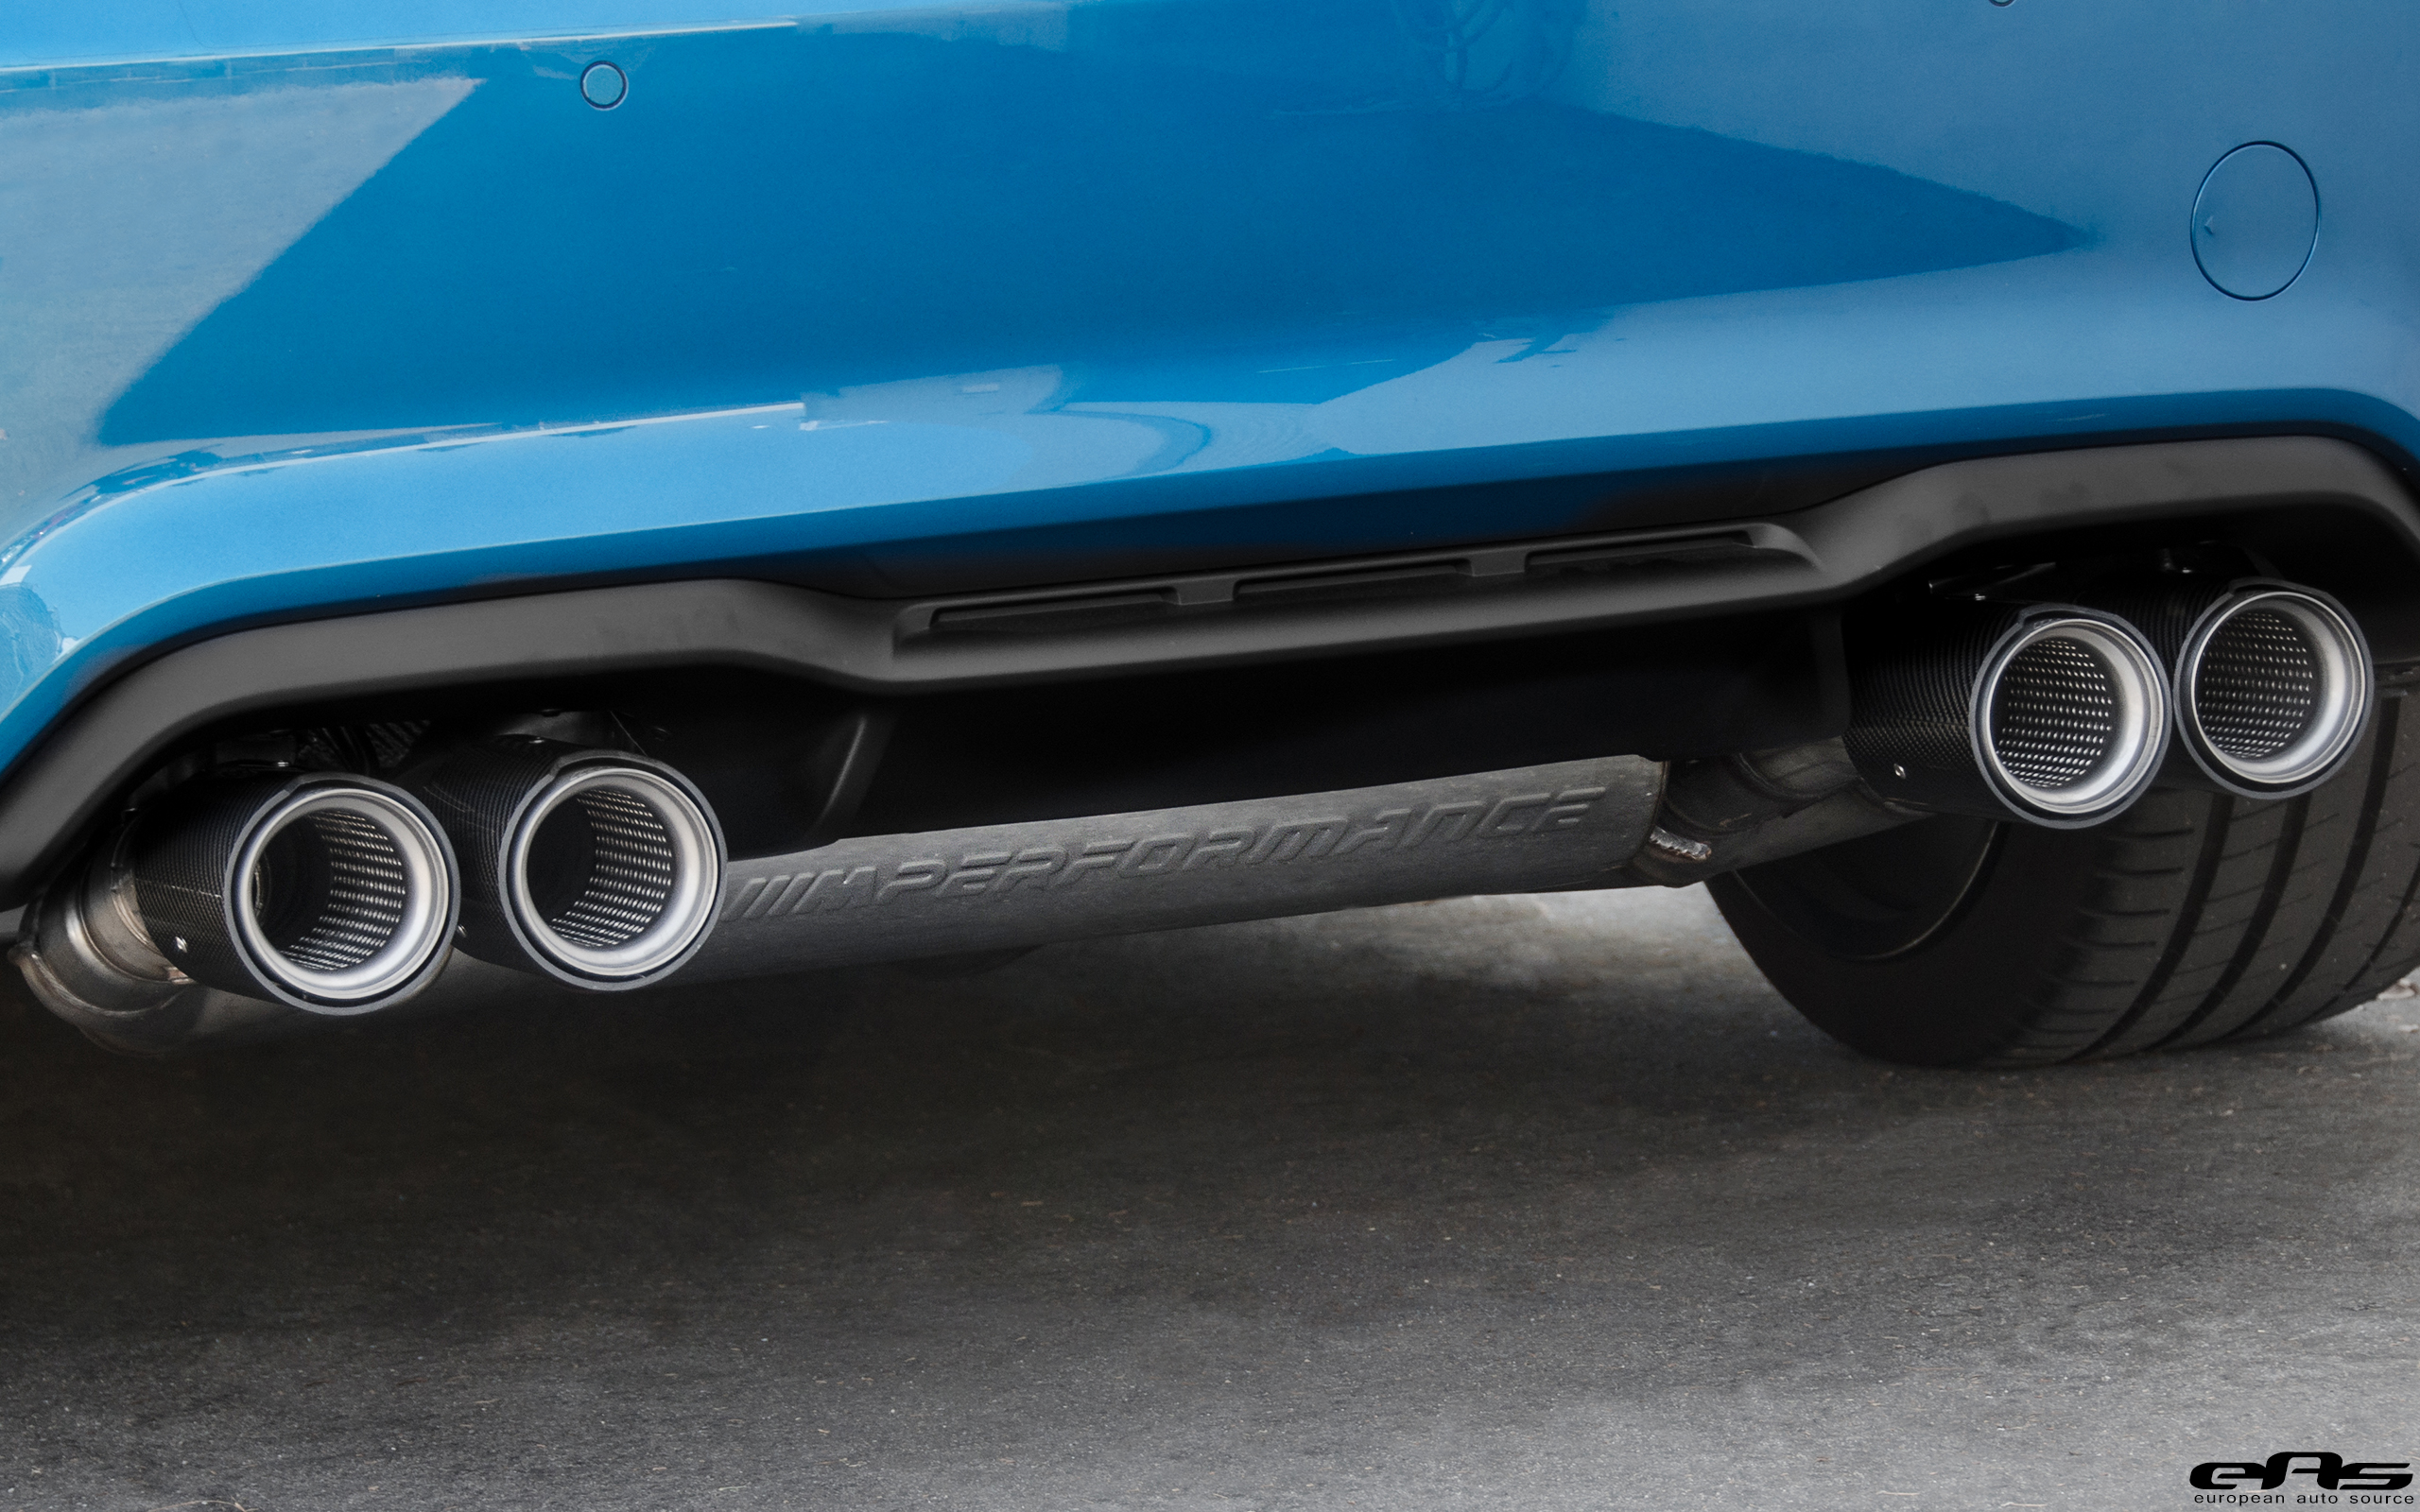 M2 M Performance Exhaust W Bluetooth Bmw Parts Services Part 1 Need Help With E70 Lci Trailer Hitch Wiring Installation